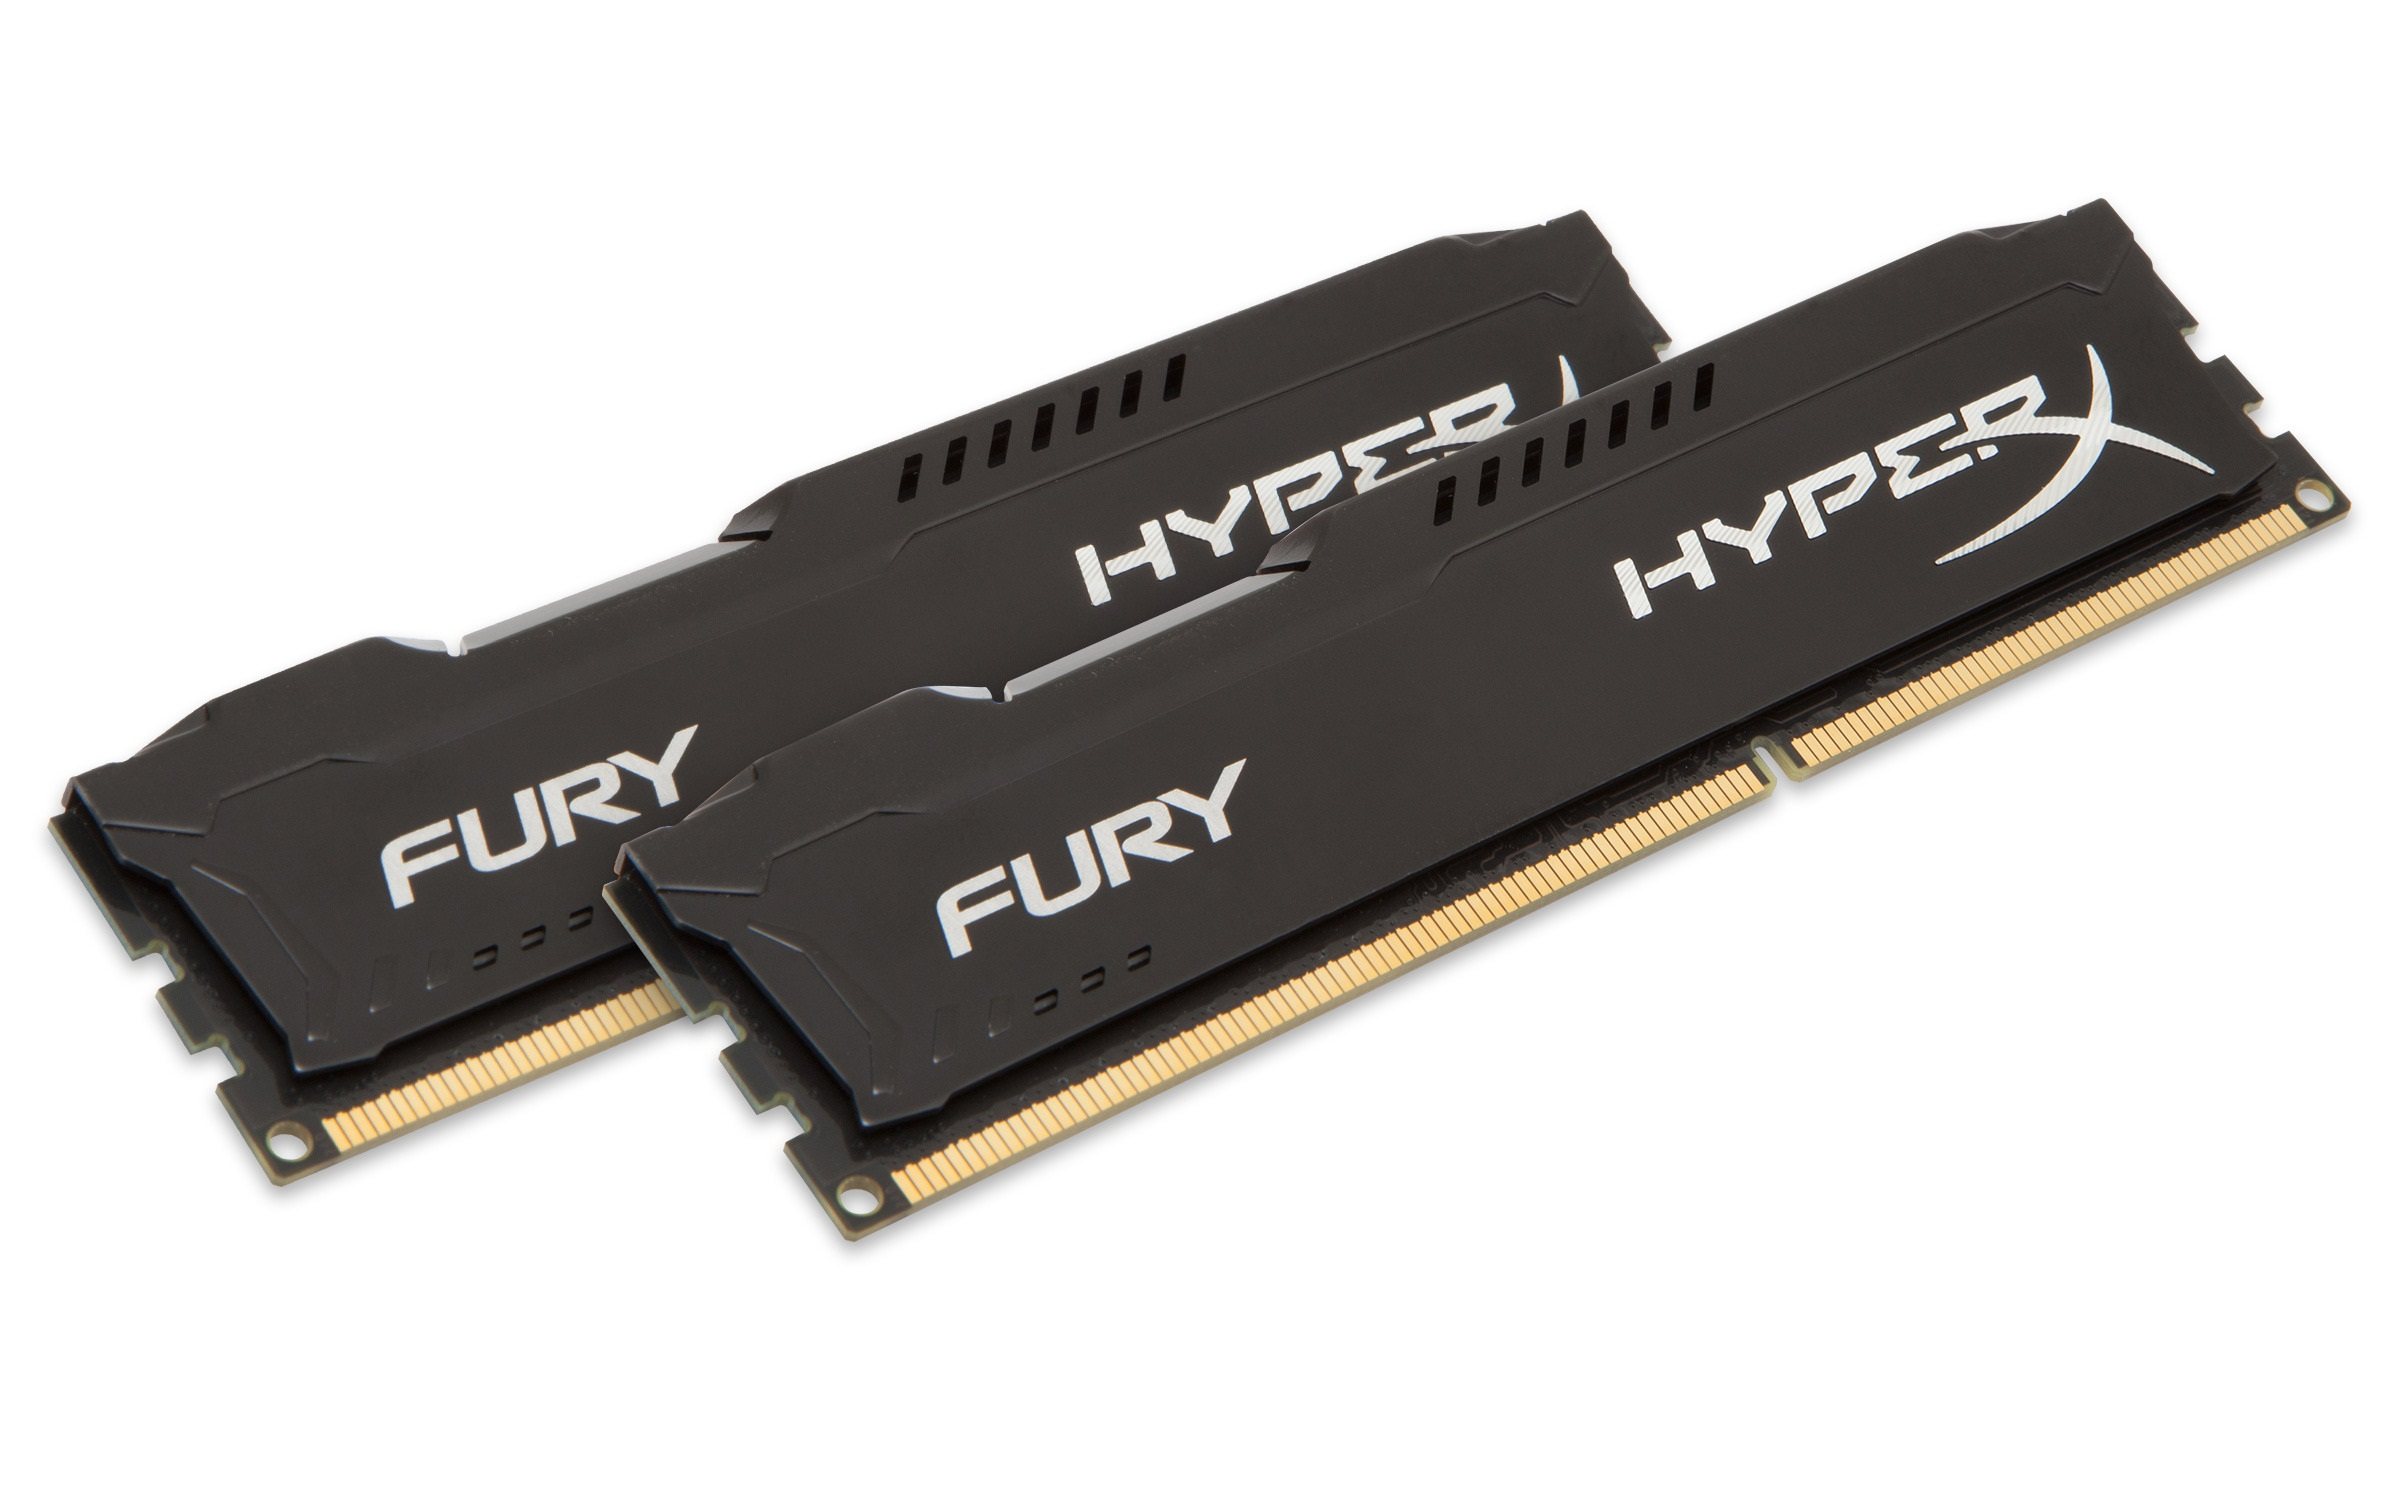 8GB DDR3-1333MHz Kingston HyperX Fury Black, 2x4GB